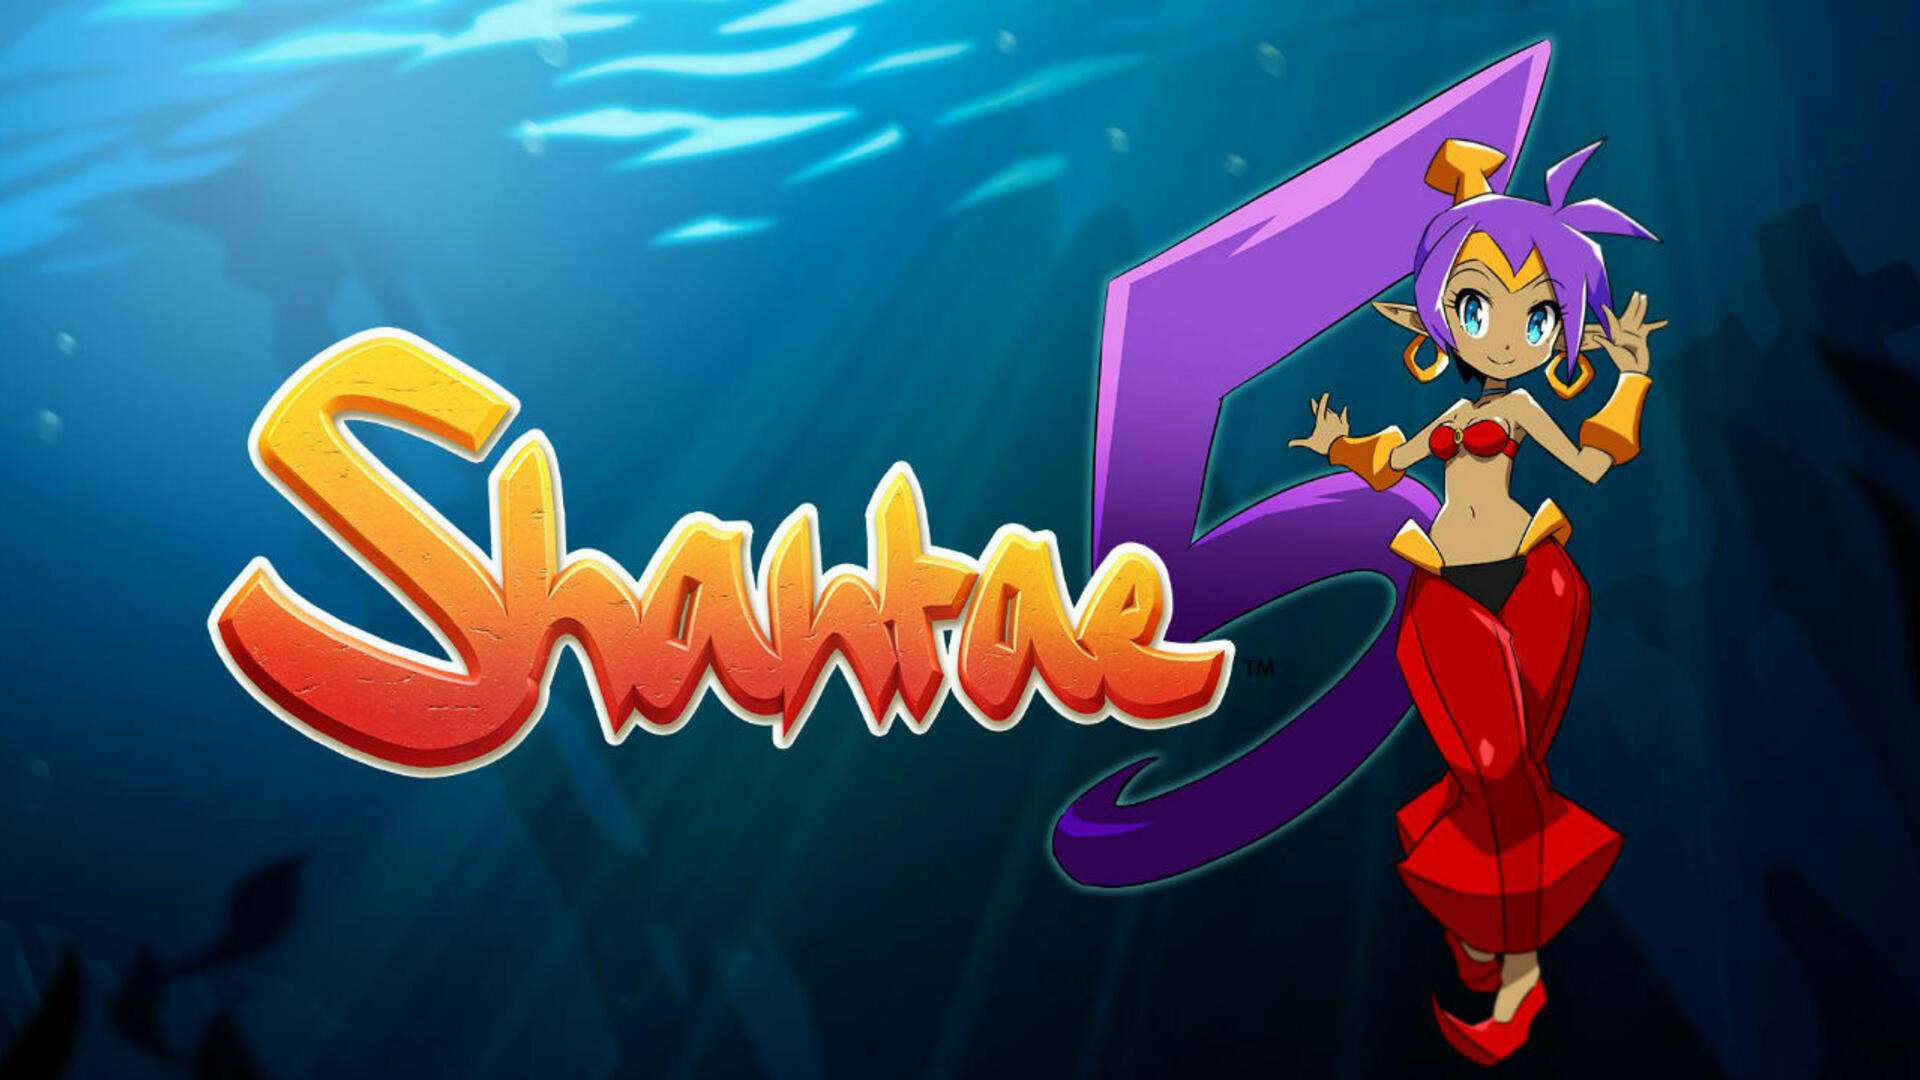 Shantae 5 Brings Wayforward's Cult Platformer to Apple Arcade Along With Switch and Other Platforms